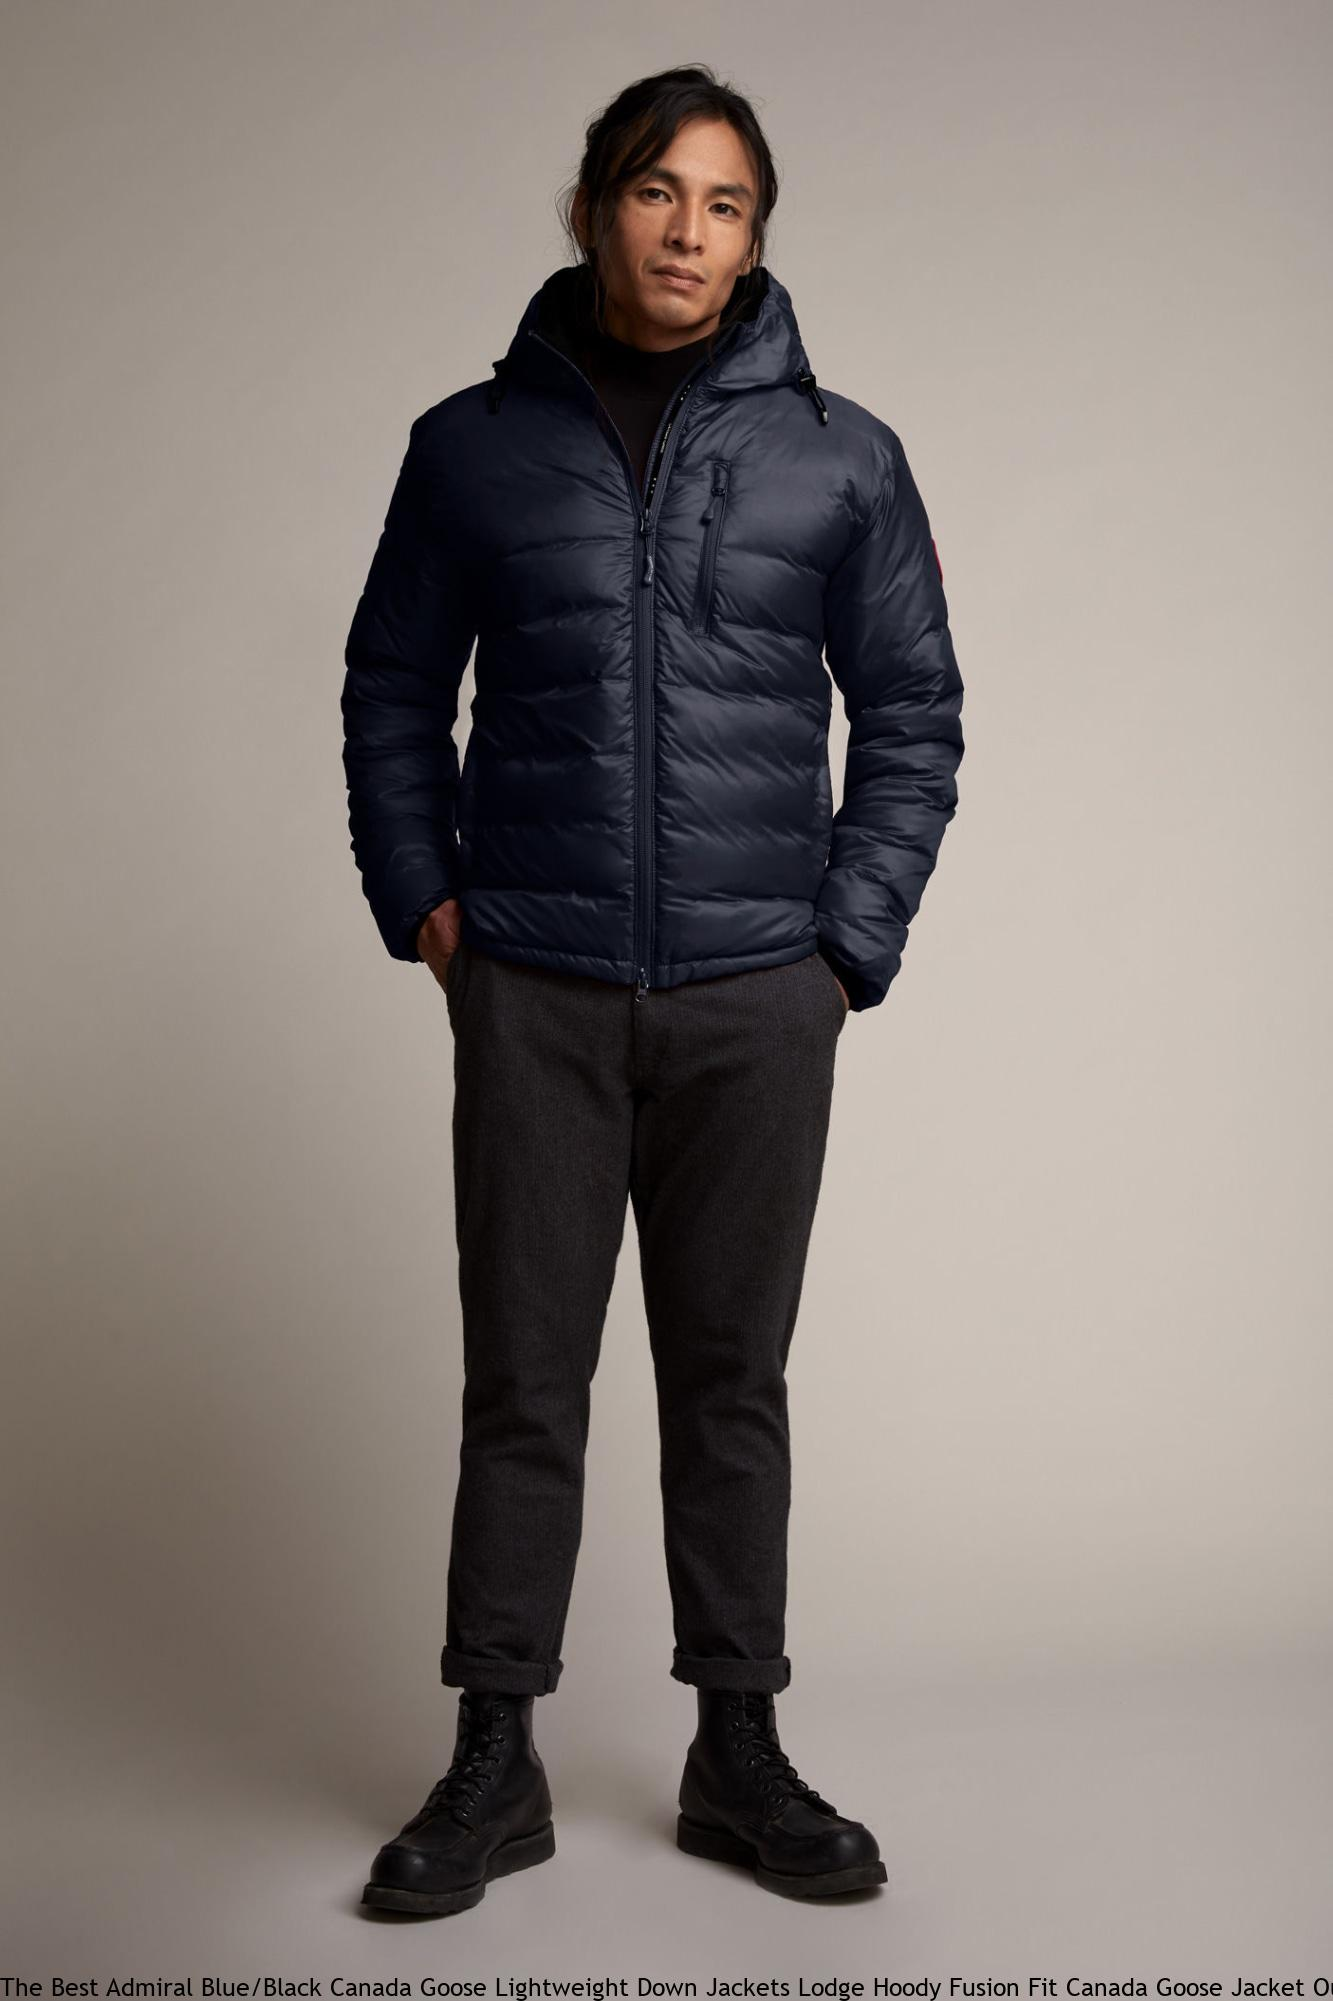 The Best Admiral Blue Black Canada Goose Lightweight Down Jackets Lodge  Hoody Fusion Fit Canada Goose Jacket Outlet Uk 5055MA c966c4515